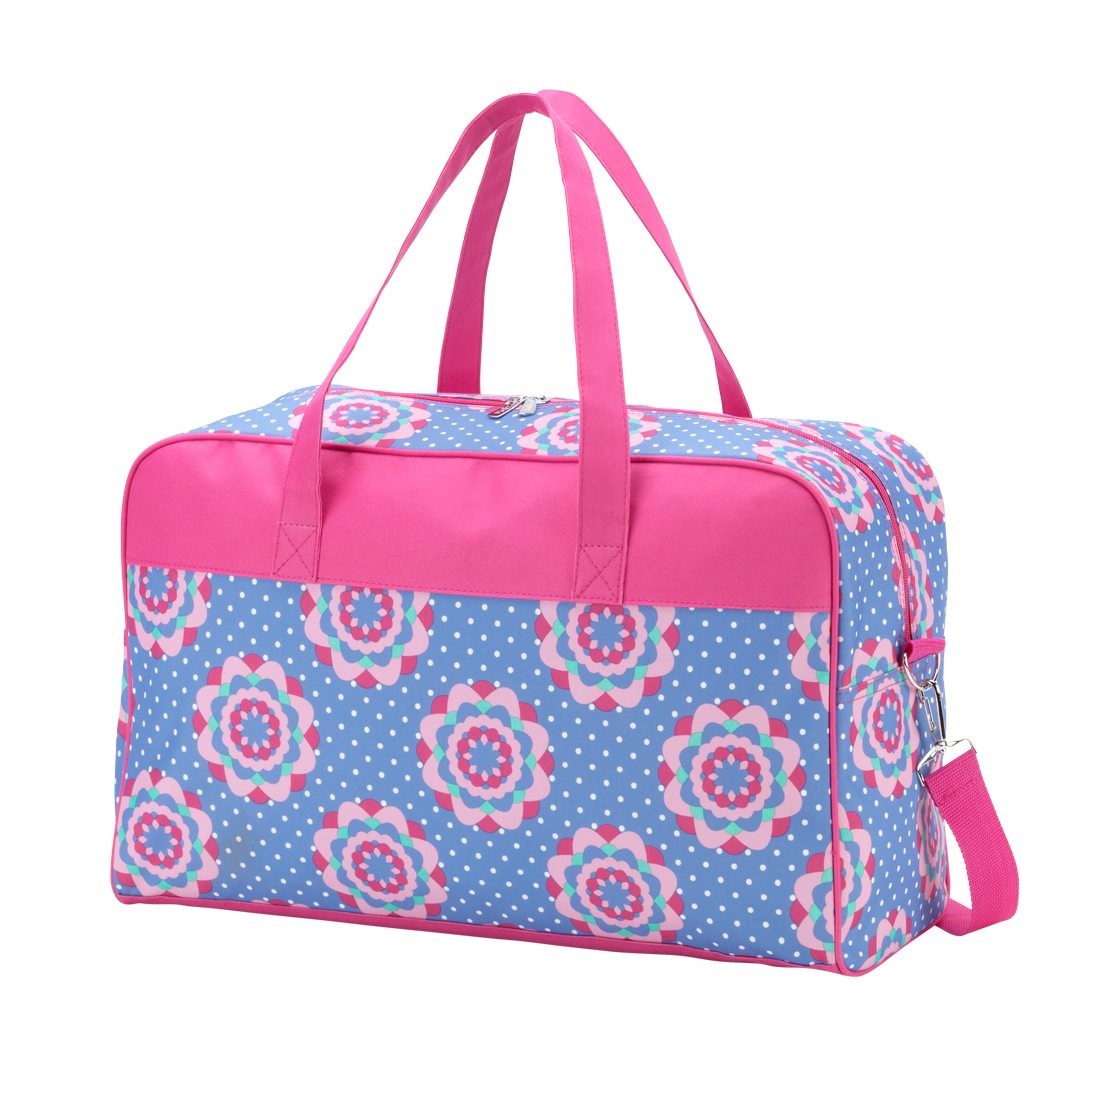 Monogrammed Duffle Bags for Kids  bd2626be1cd5c